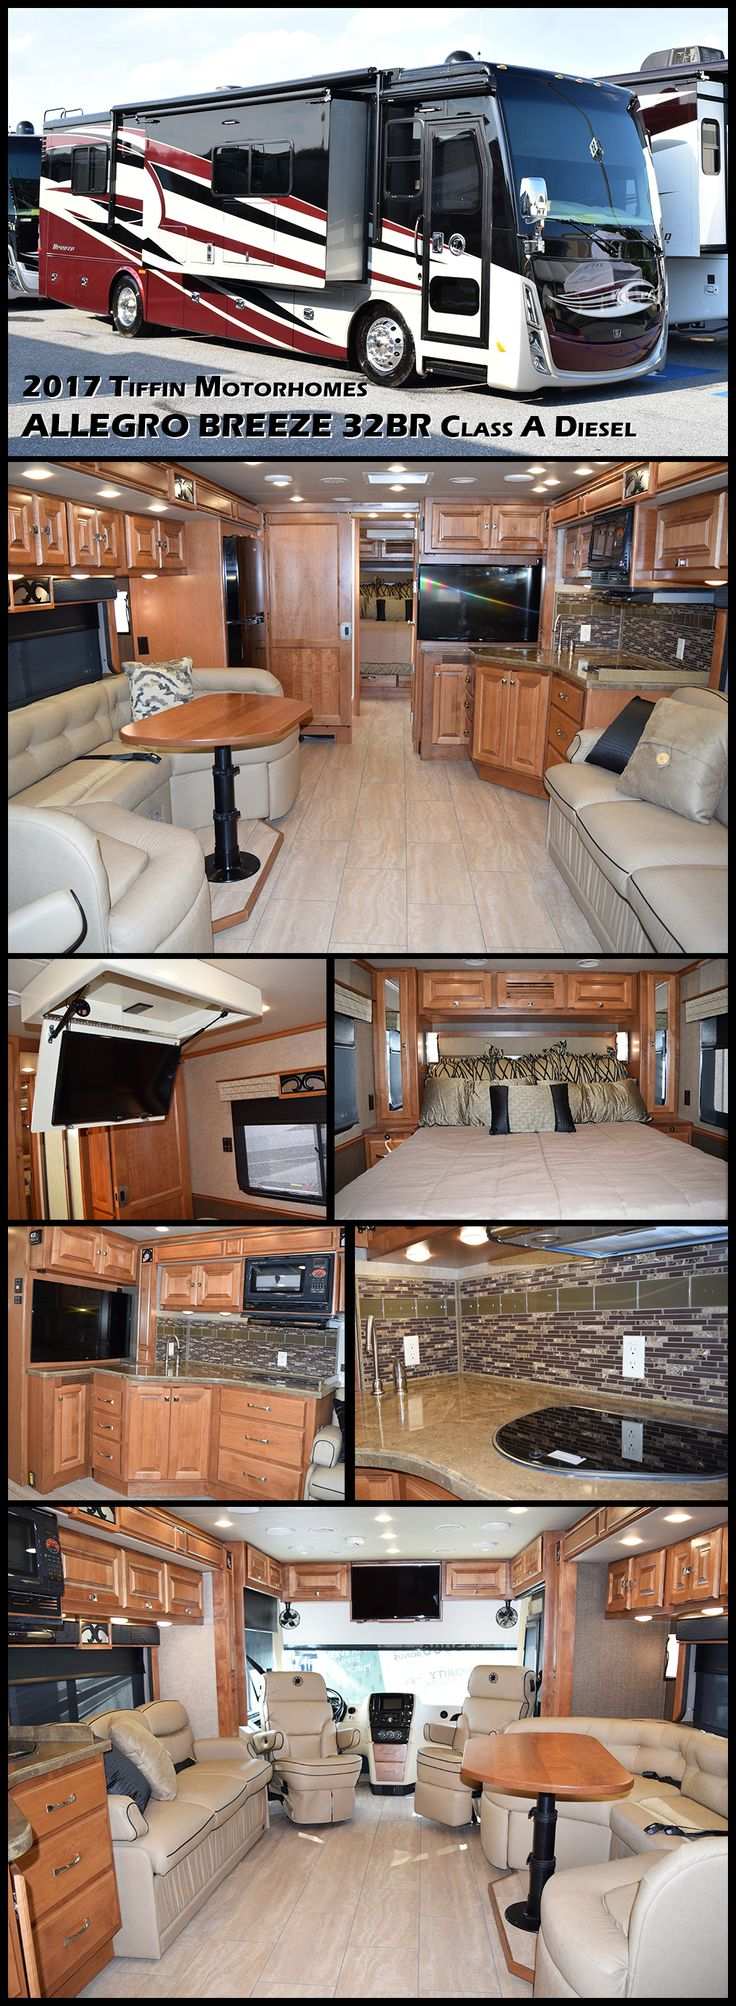 "Step inside this 2017 Tiffin Motorhomes ALLEGRO BREEZE 32BR and see why RV Magazine called it ""the sports car of Class A motorhomes."" The smallest, lightest, easiest handling, highest mileage Class A rear engine diesel coach on the road today."